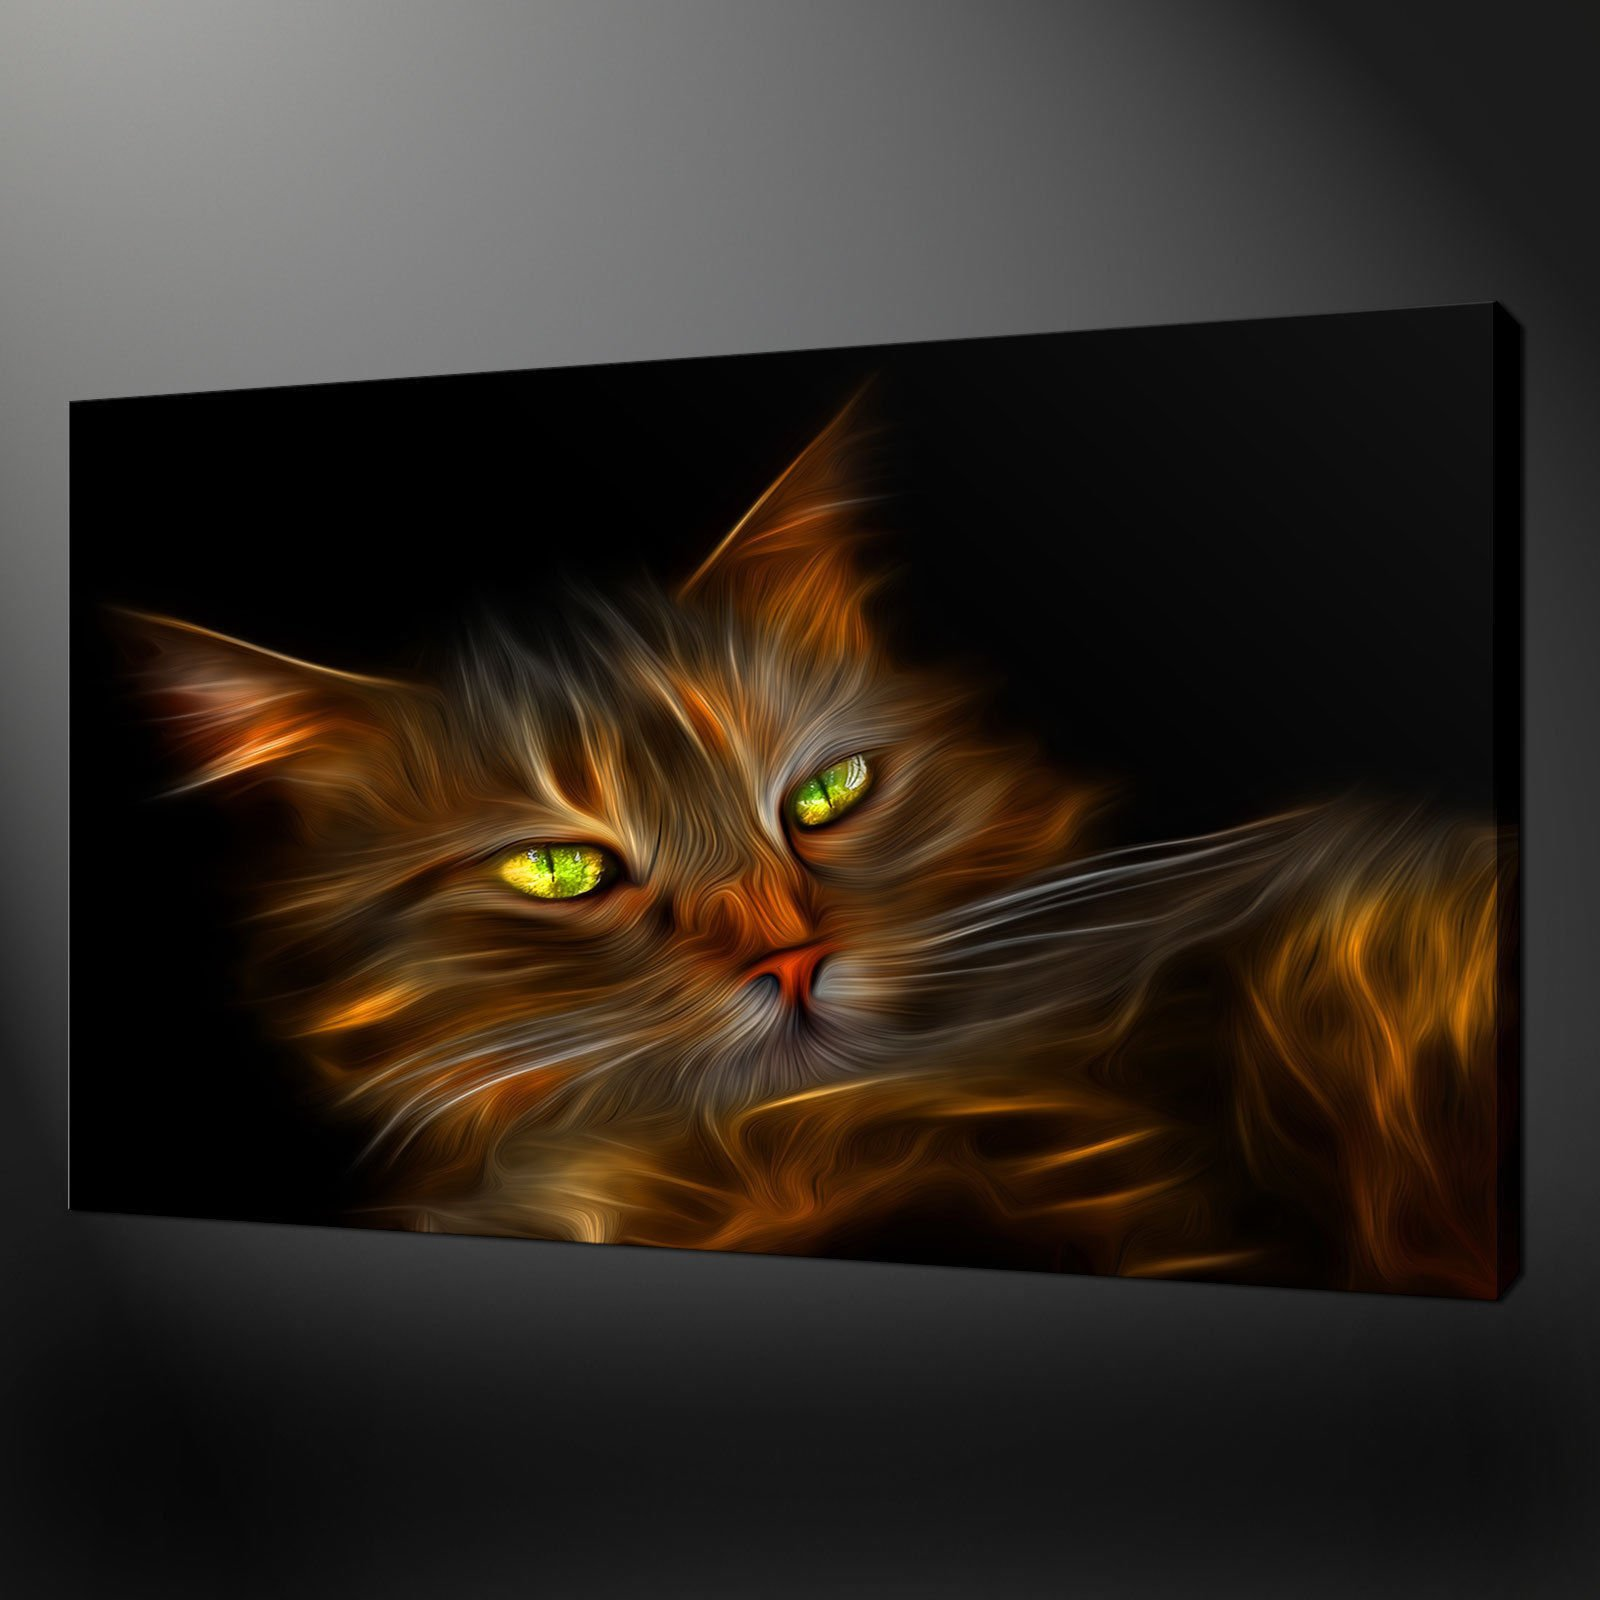 Canvas print pictures high quality handmade free next for Cat paintings on canvas